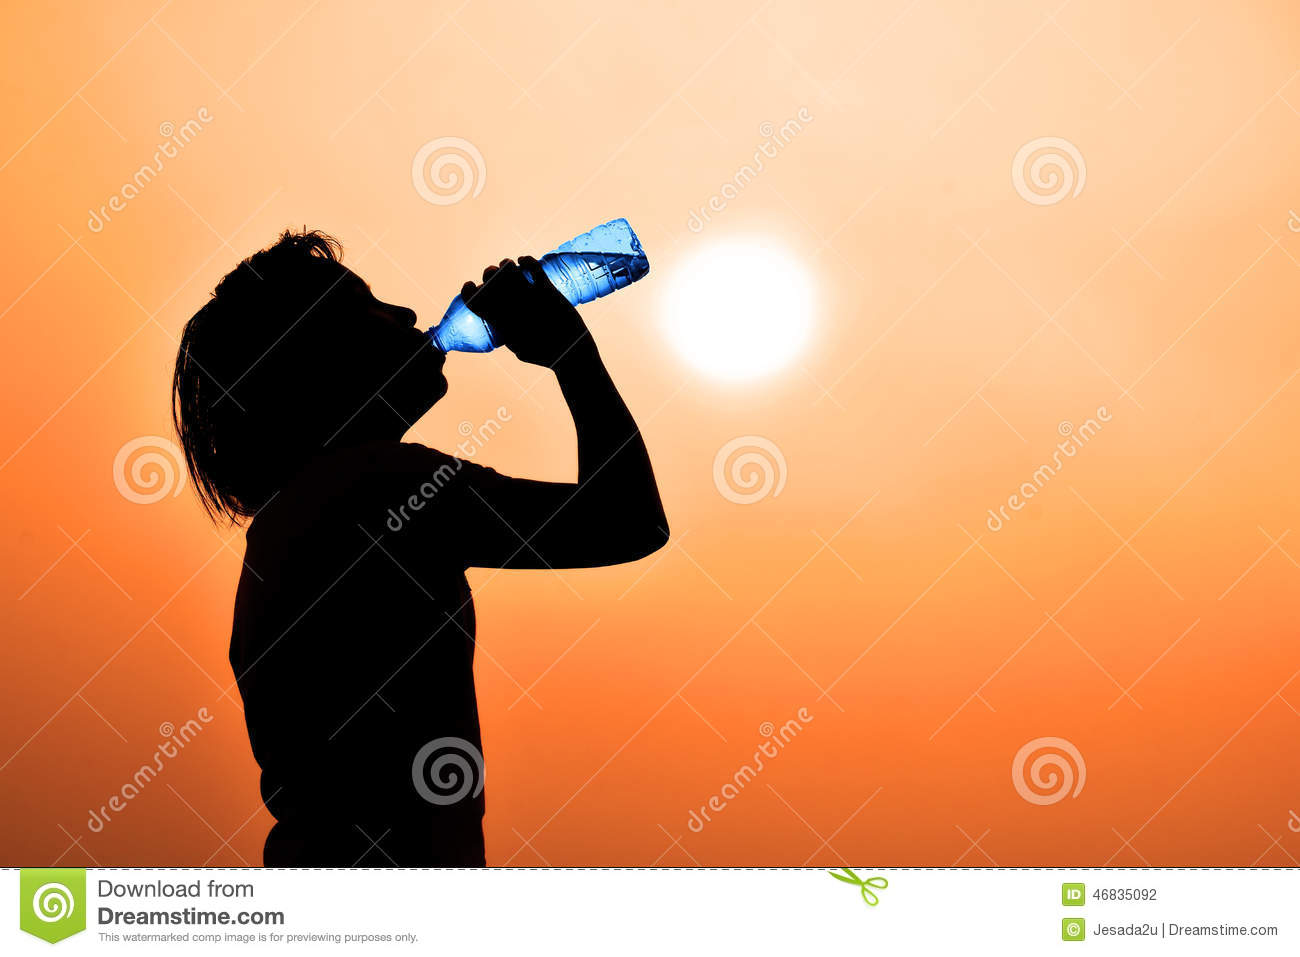 Silhouette of young woman drinking water ( thirsty, hot feeling a need to drink water)